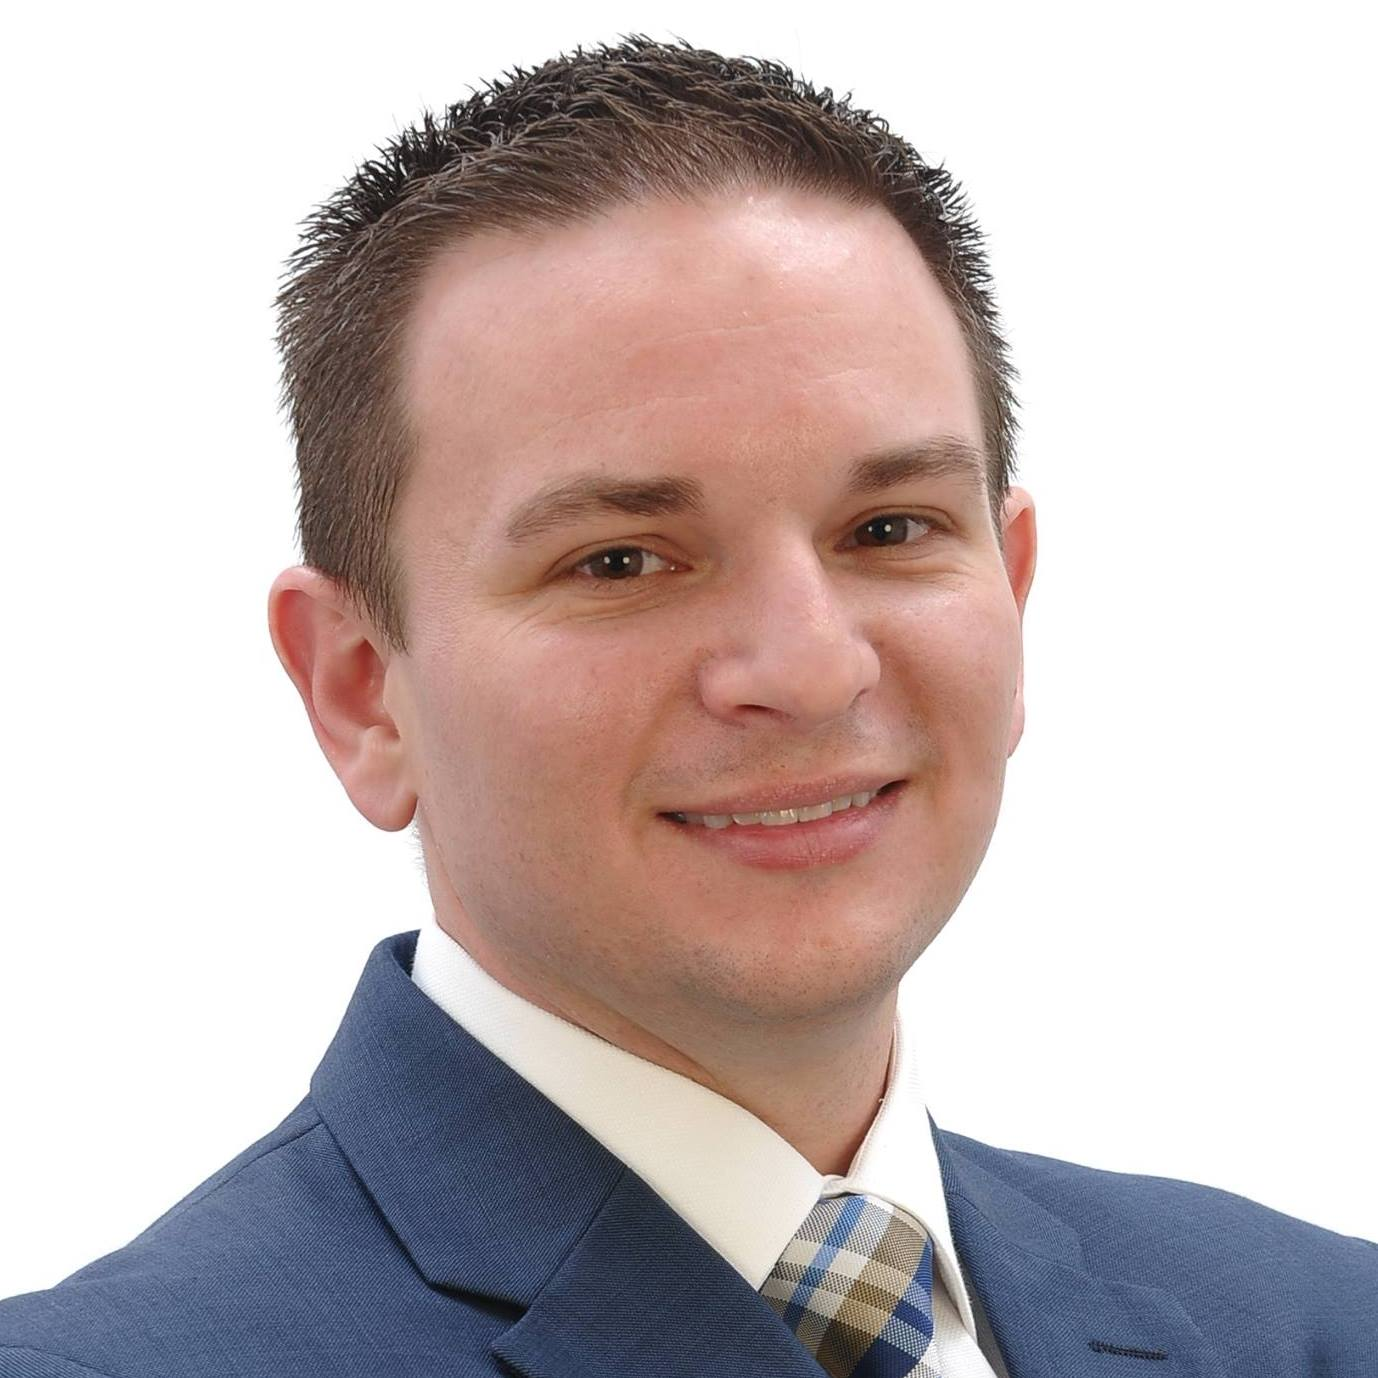 Brandon Beal, Regional Sales Manager